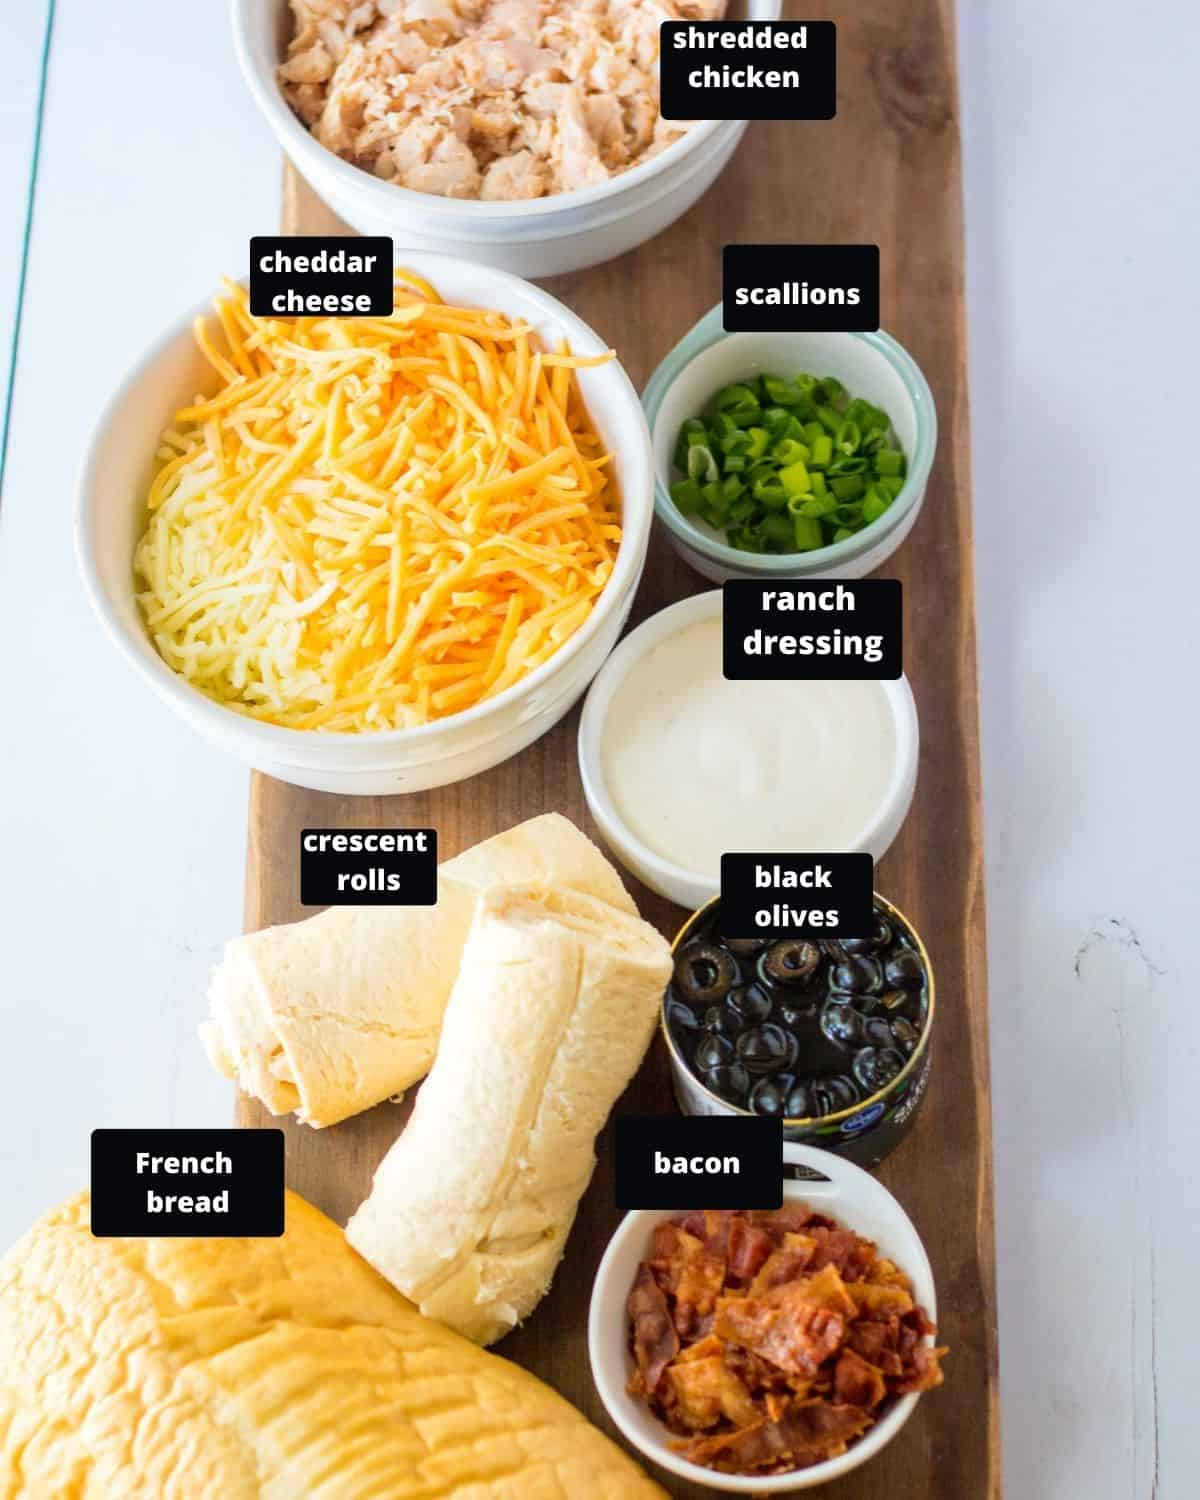 Ingredients to make mummy pizza on a wooden board, shredded chicken, cheddar cheese, black olives, scallions, crescent rolls, french bread, bacon, and ranch dressing.